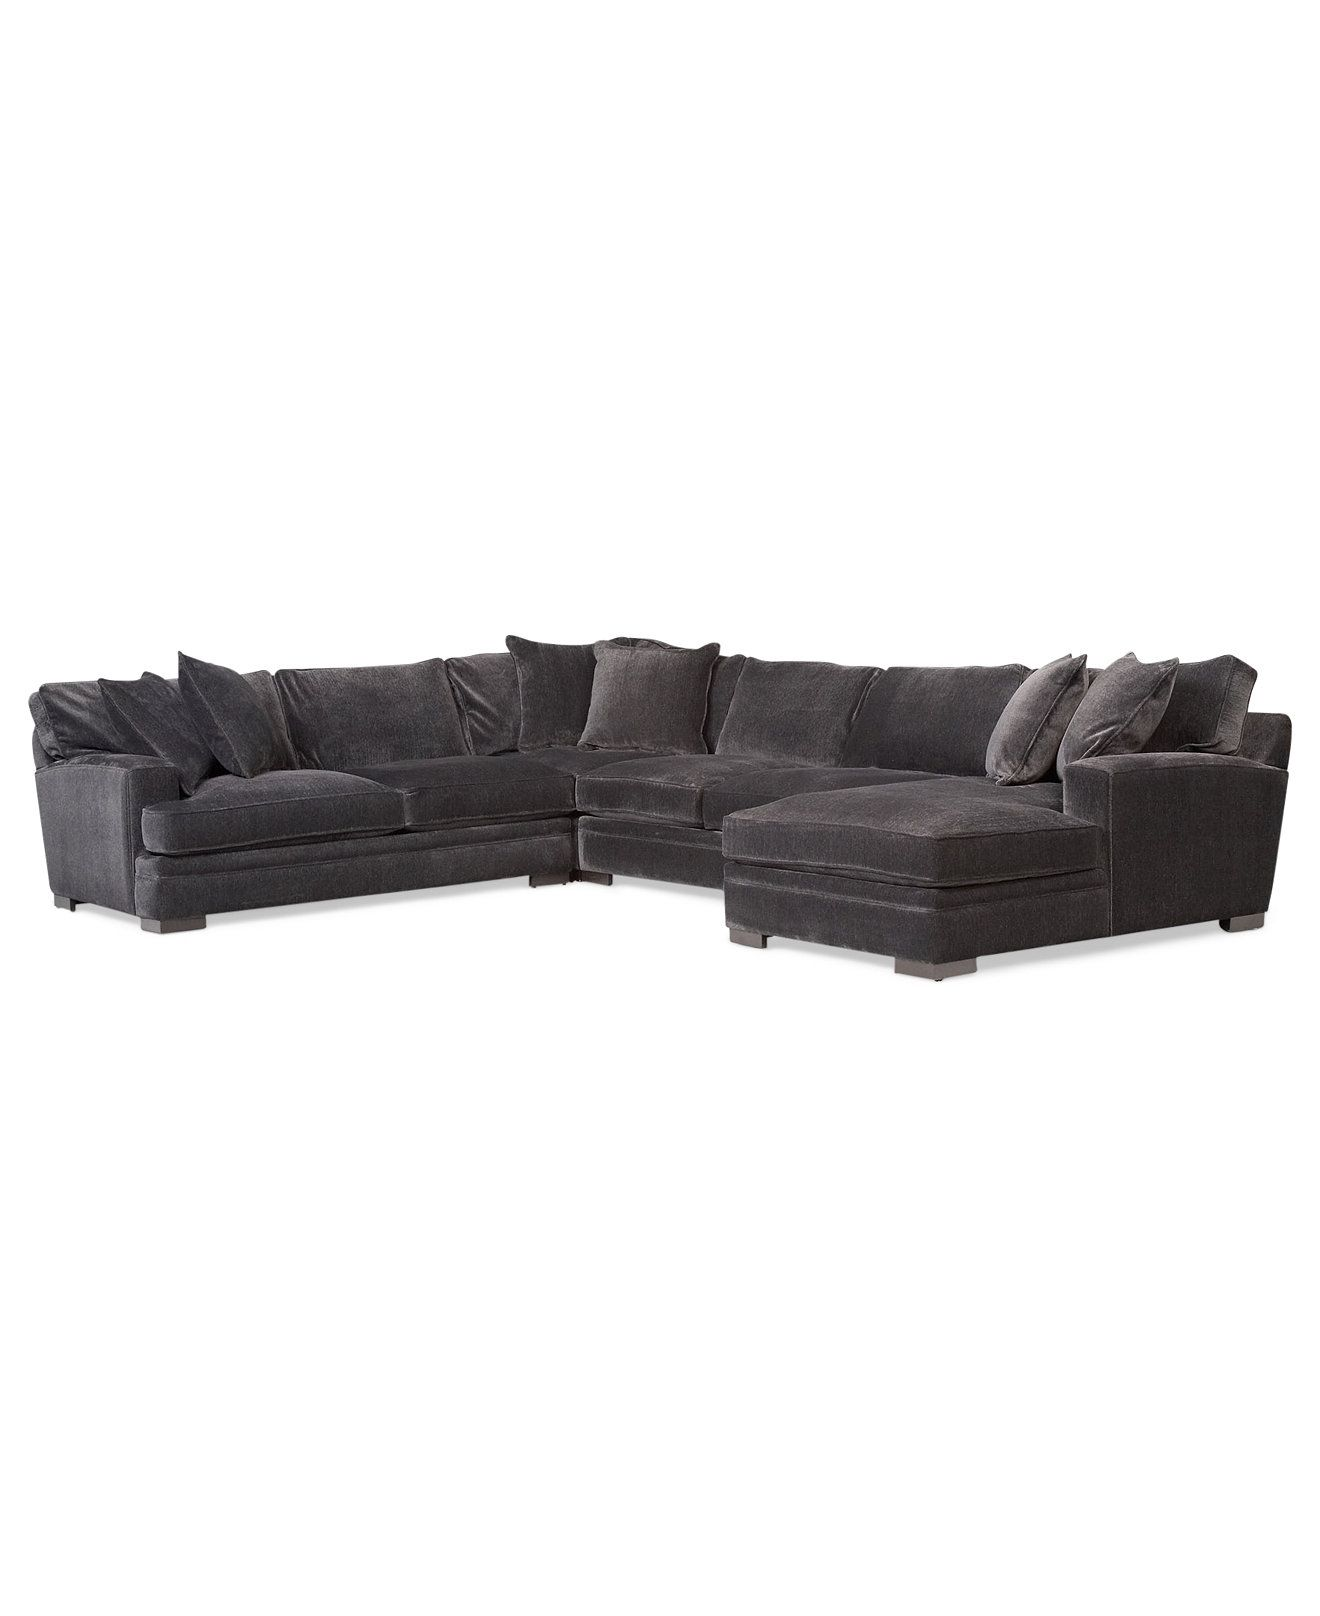 Best Teddy Fabric 4 Piece Chaise Sectional Sofa Couches 400 x 300